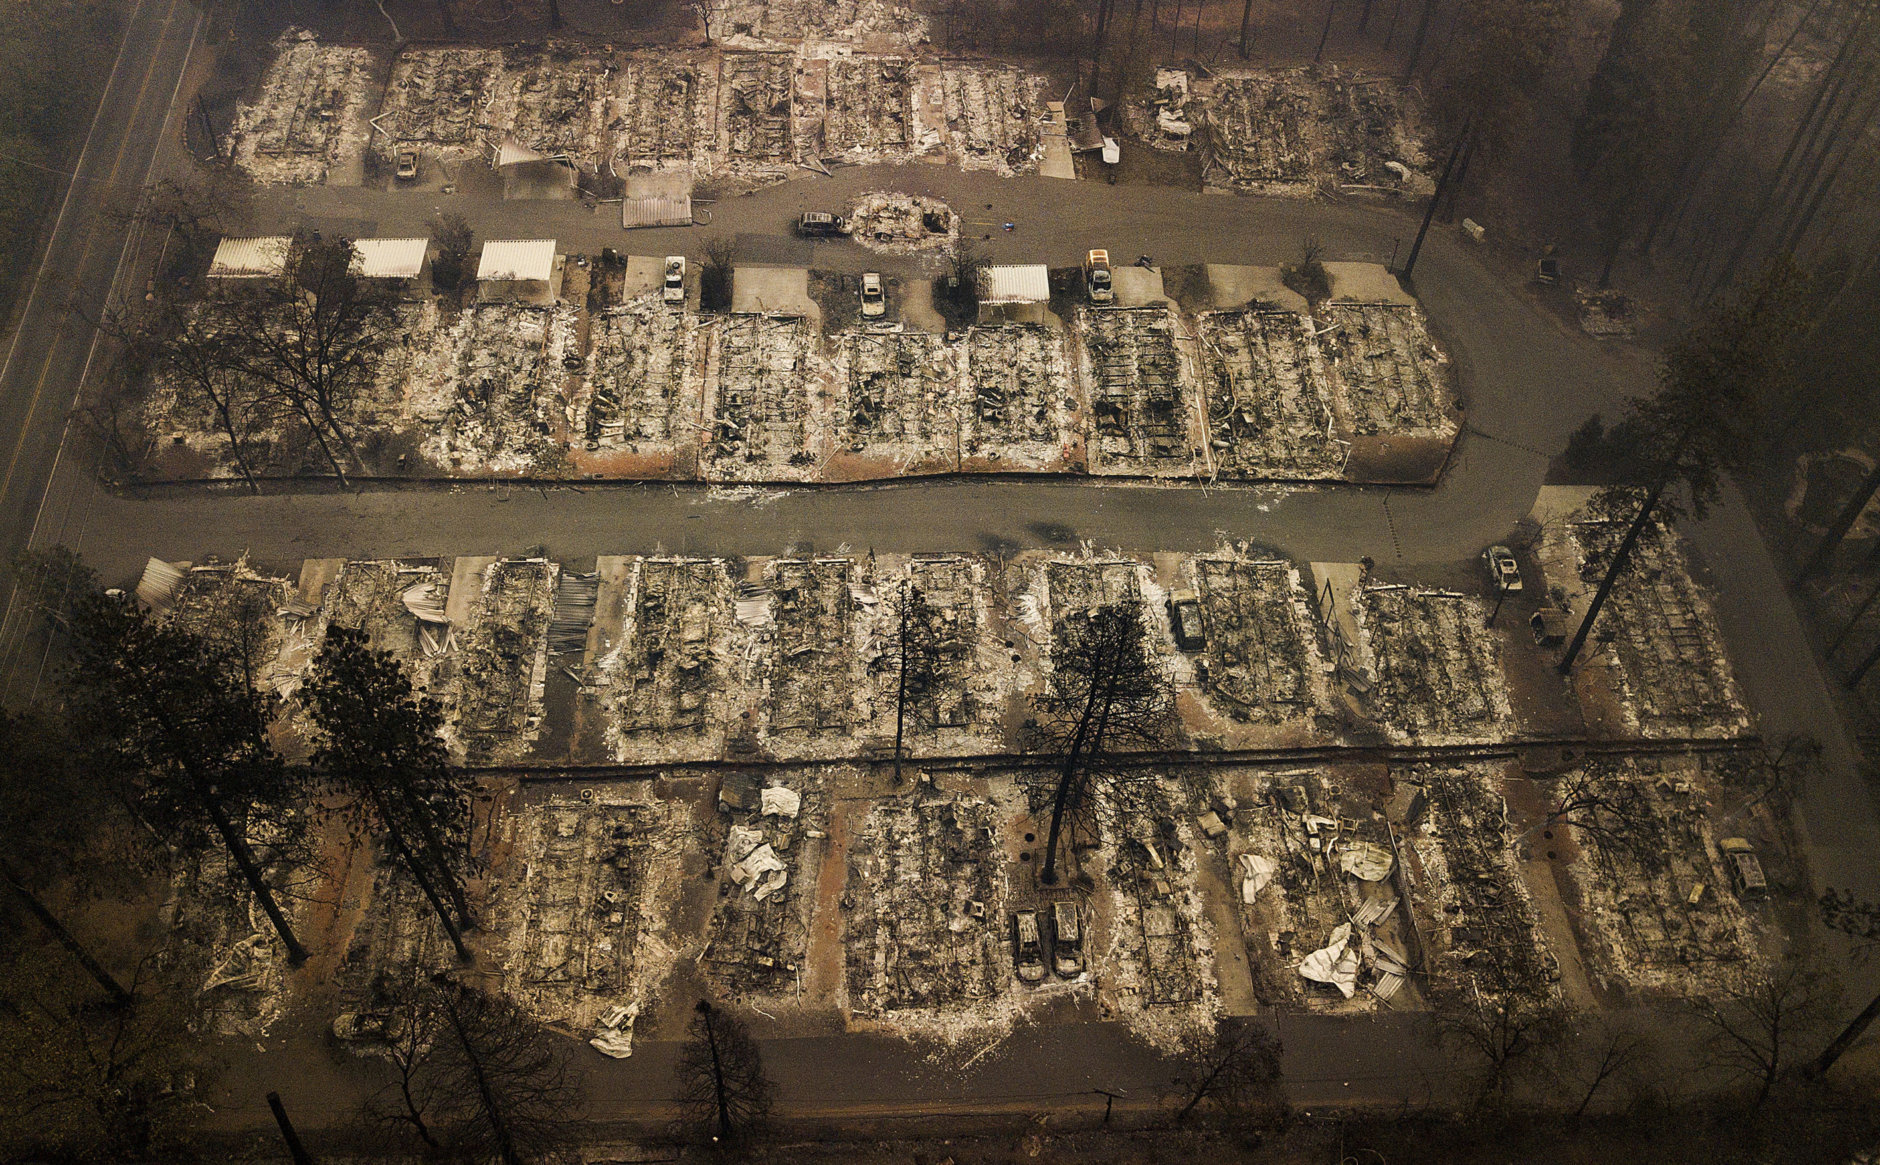 Ashes and debris are all that remain where houses once stood in Paradise, Calif., on Nov. 15, 2018, after a wildfire destroyed the town. (AP Photo/Noah Berger)